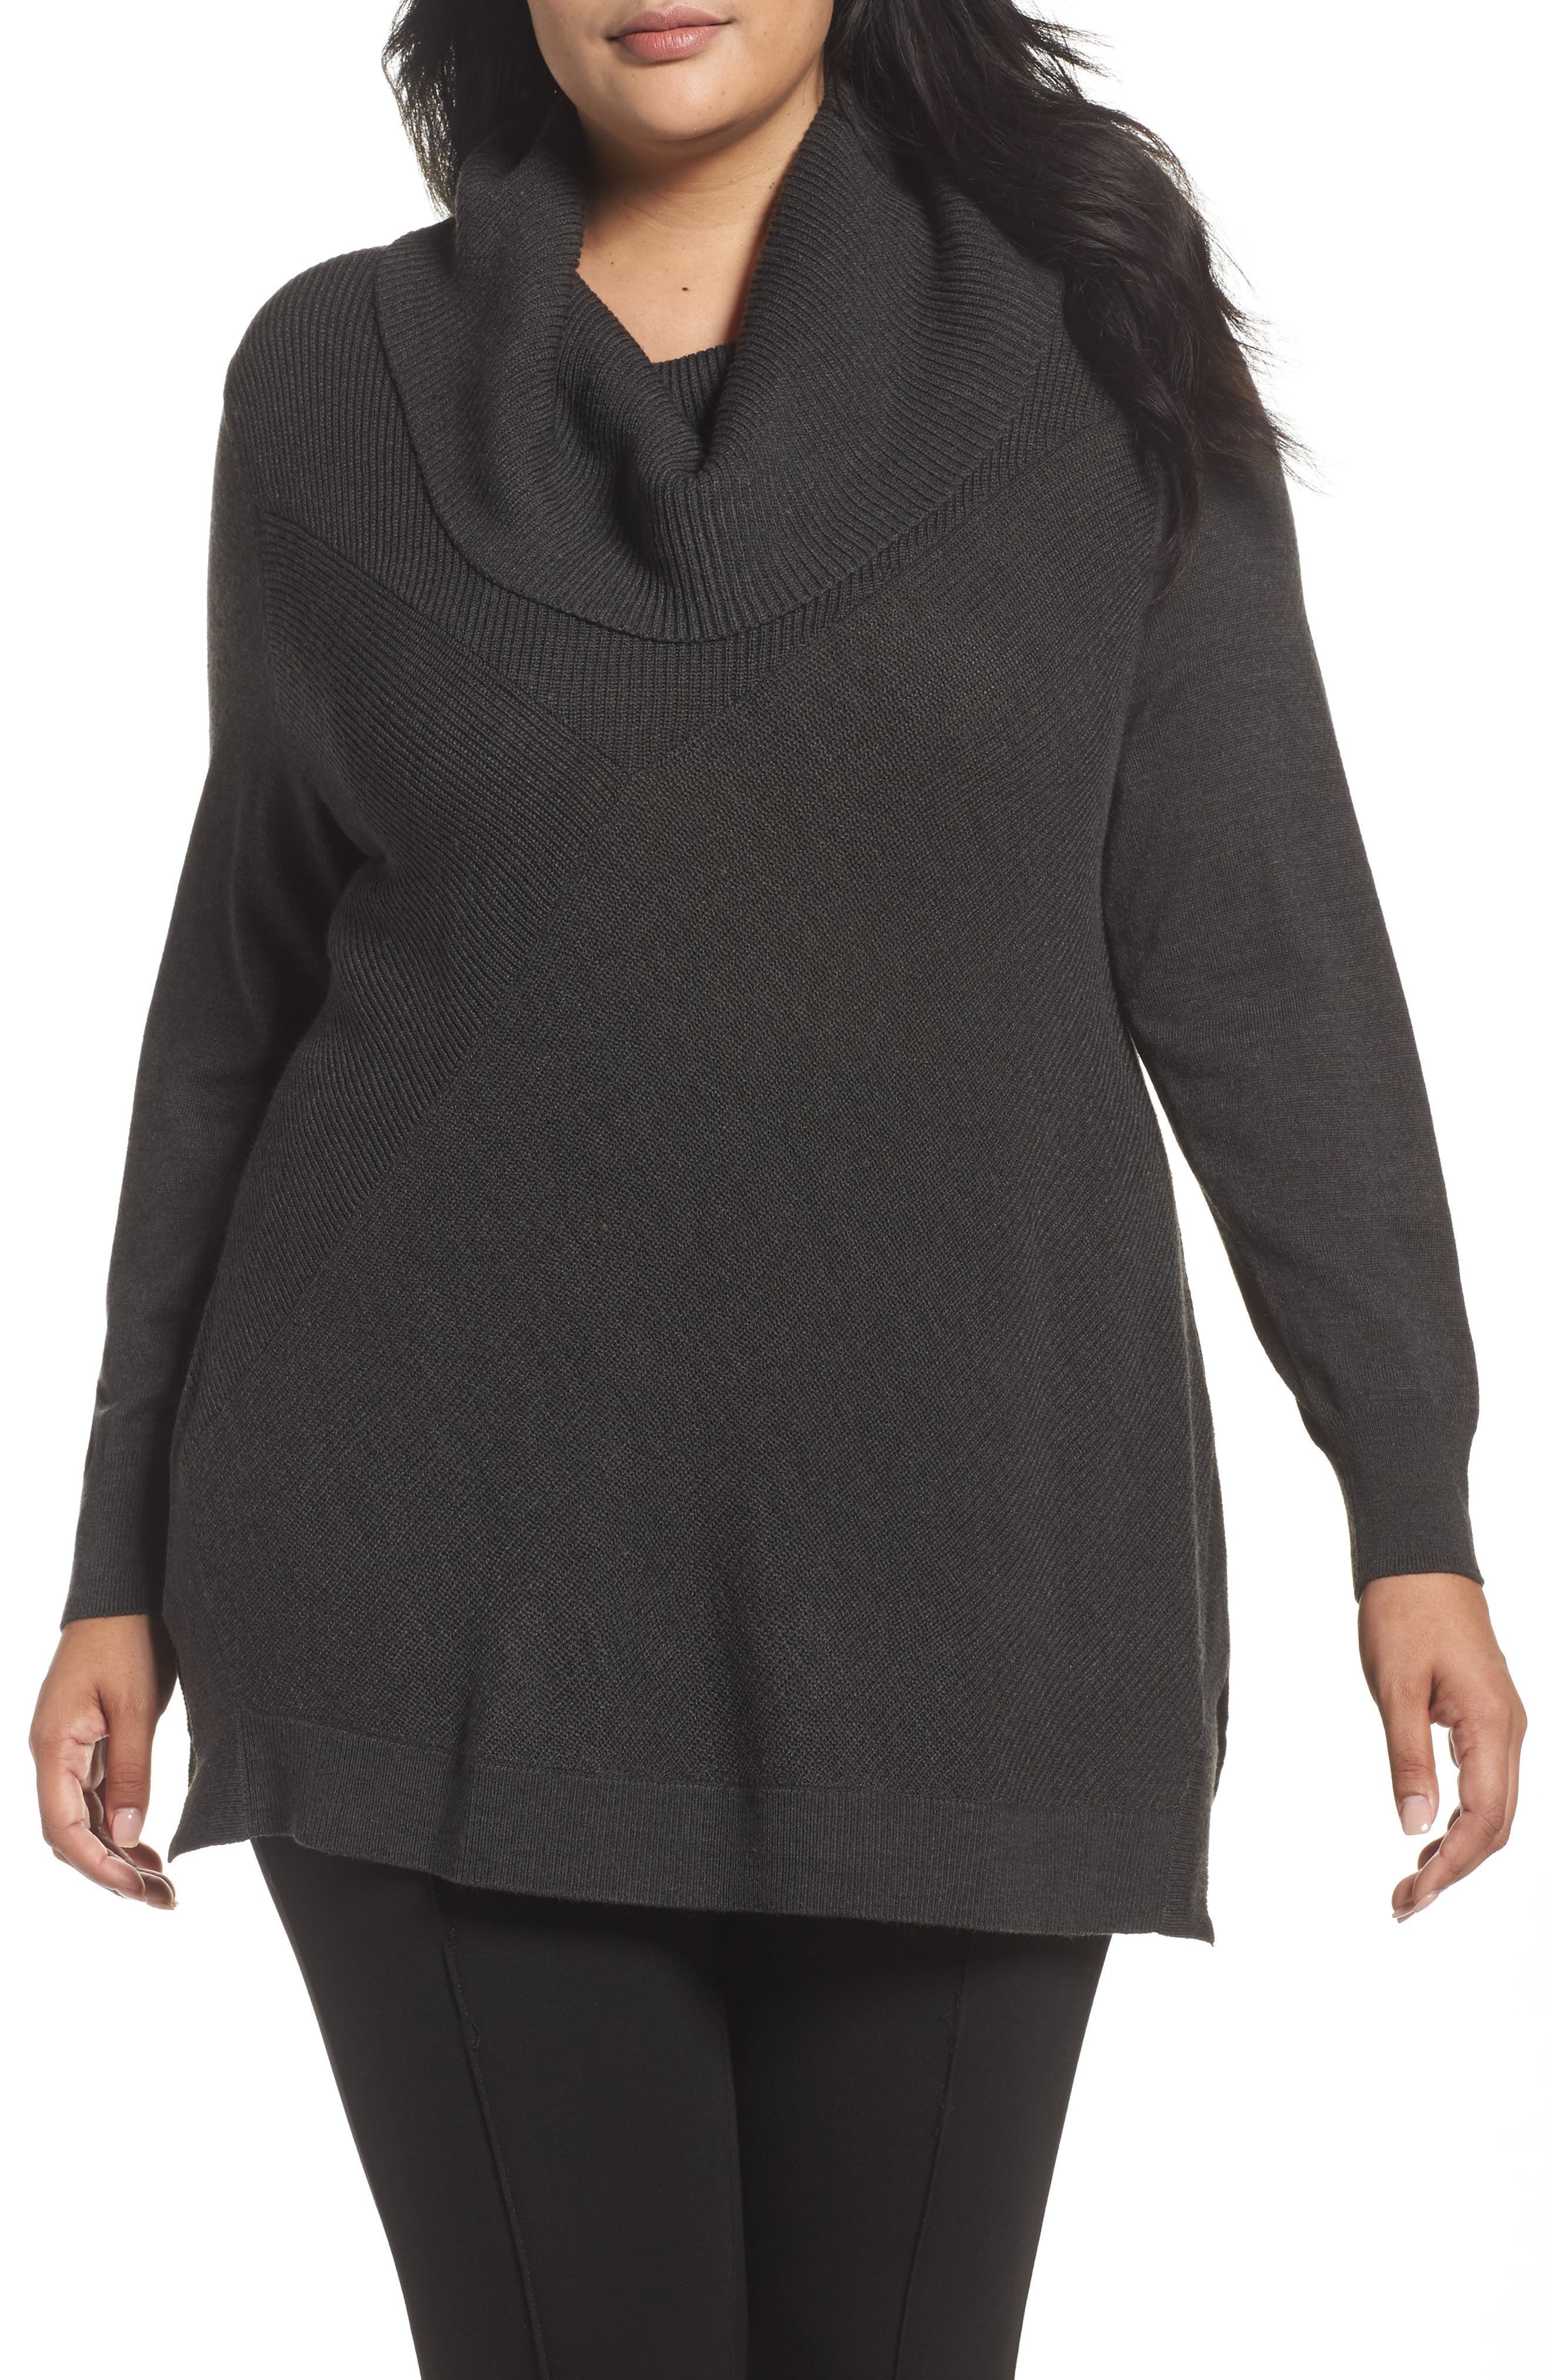 Alternate Image 1 Selected - Sejour Cowl Neck Ribbed Trim Pullover (Plus Size)